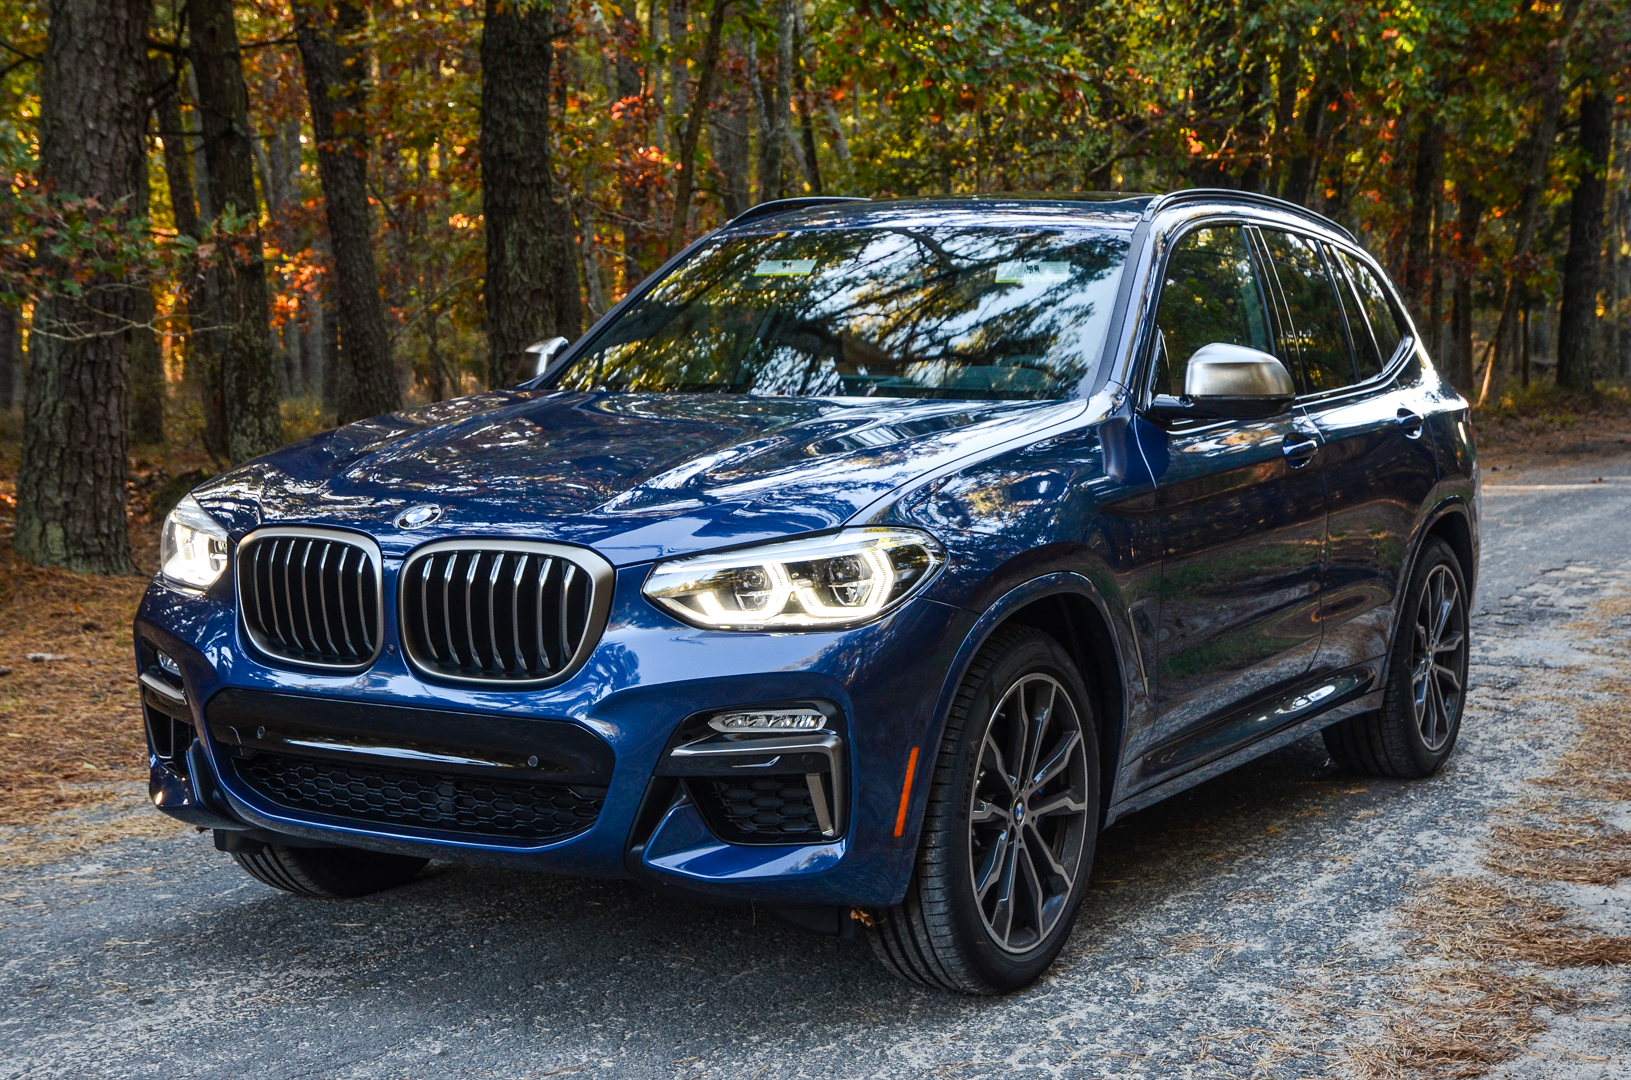 auto express drives the bmw x3 m40i. Black Bedroom Furniture Sets. Home Design Ideas